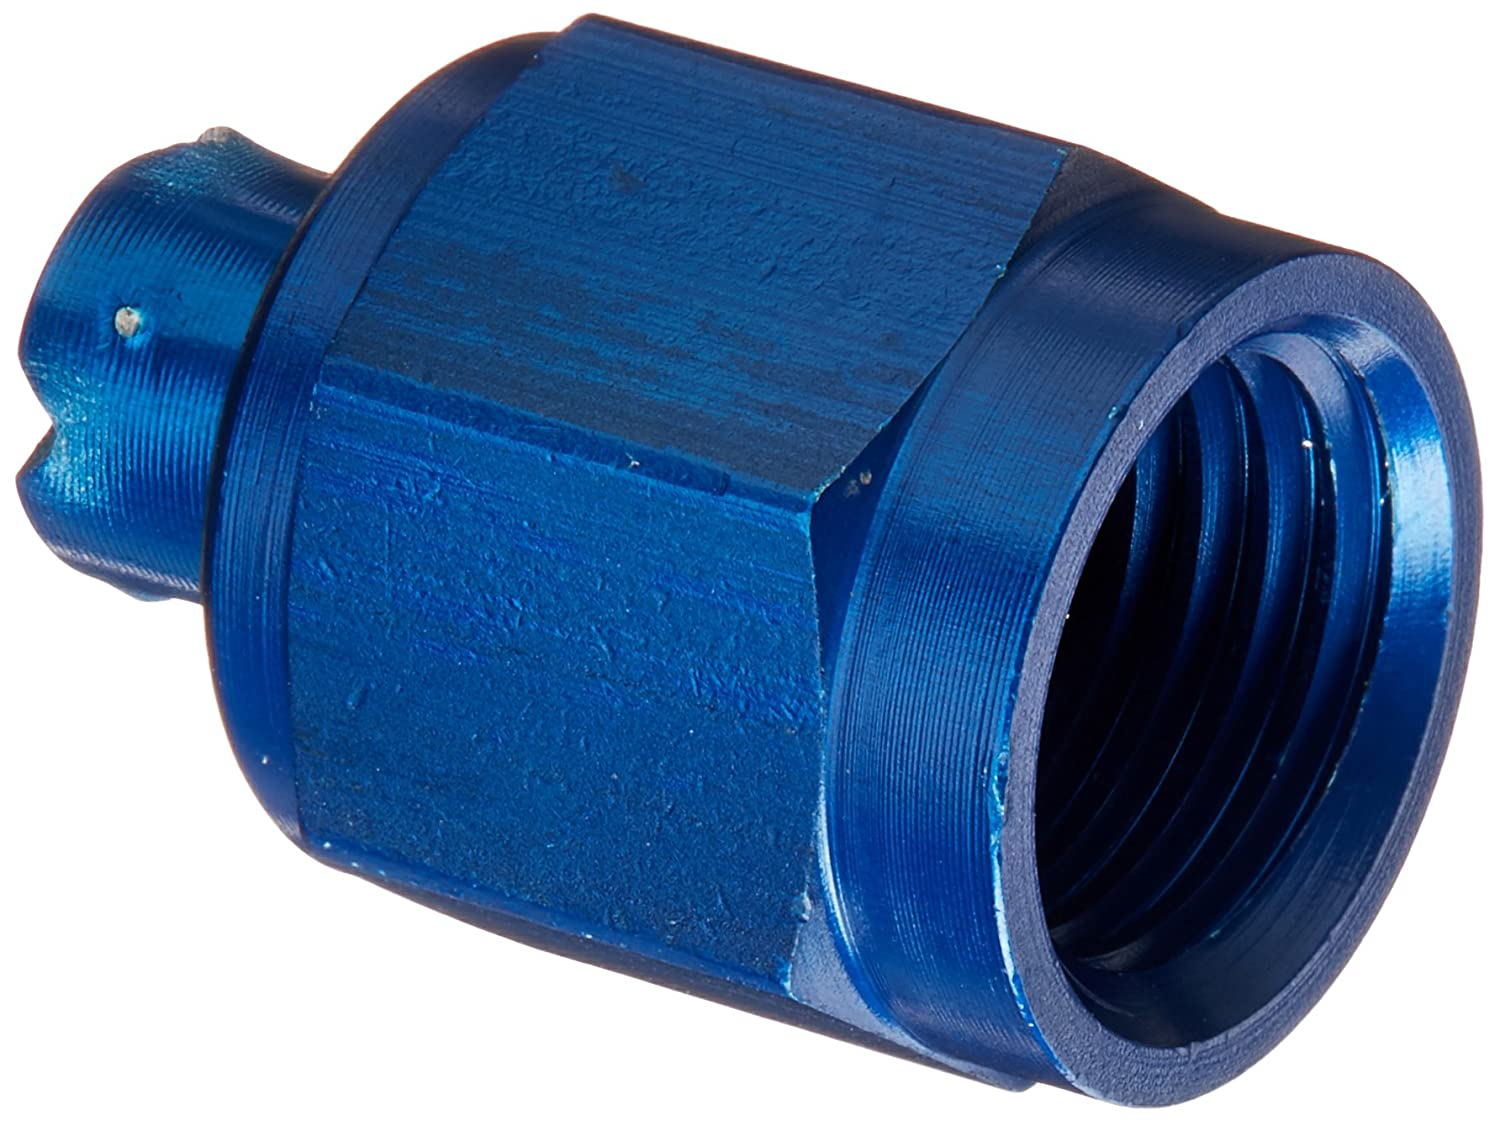 Aeroquip FCM3752 Blue Anodized Aluminum -4AN Tube Cap Fittings - Pack of 2